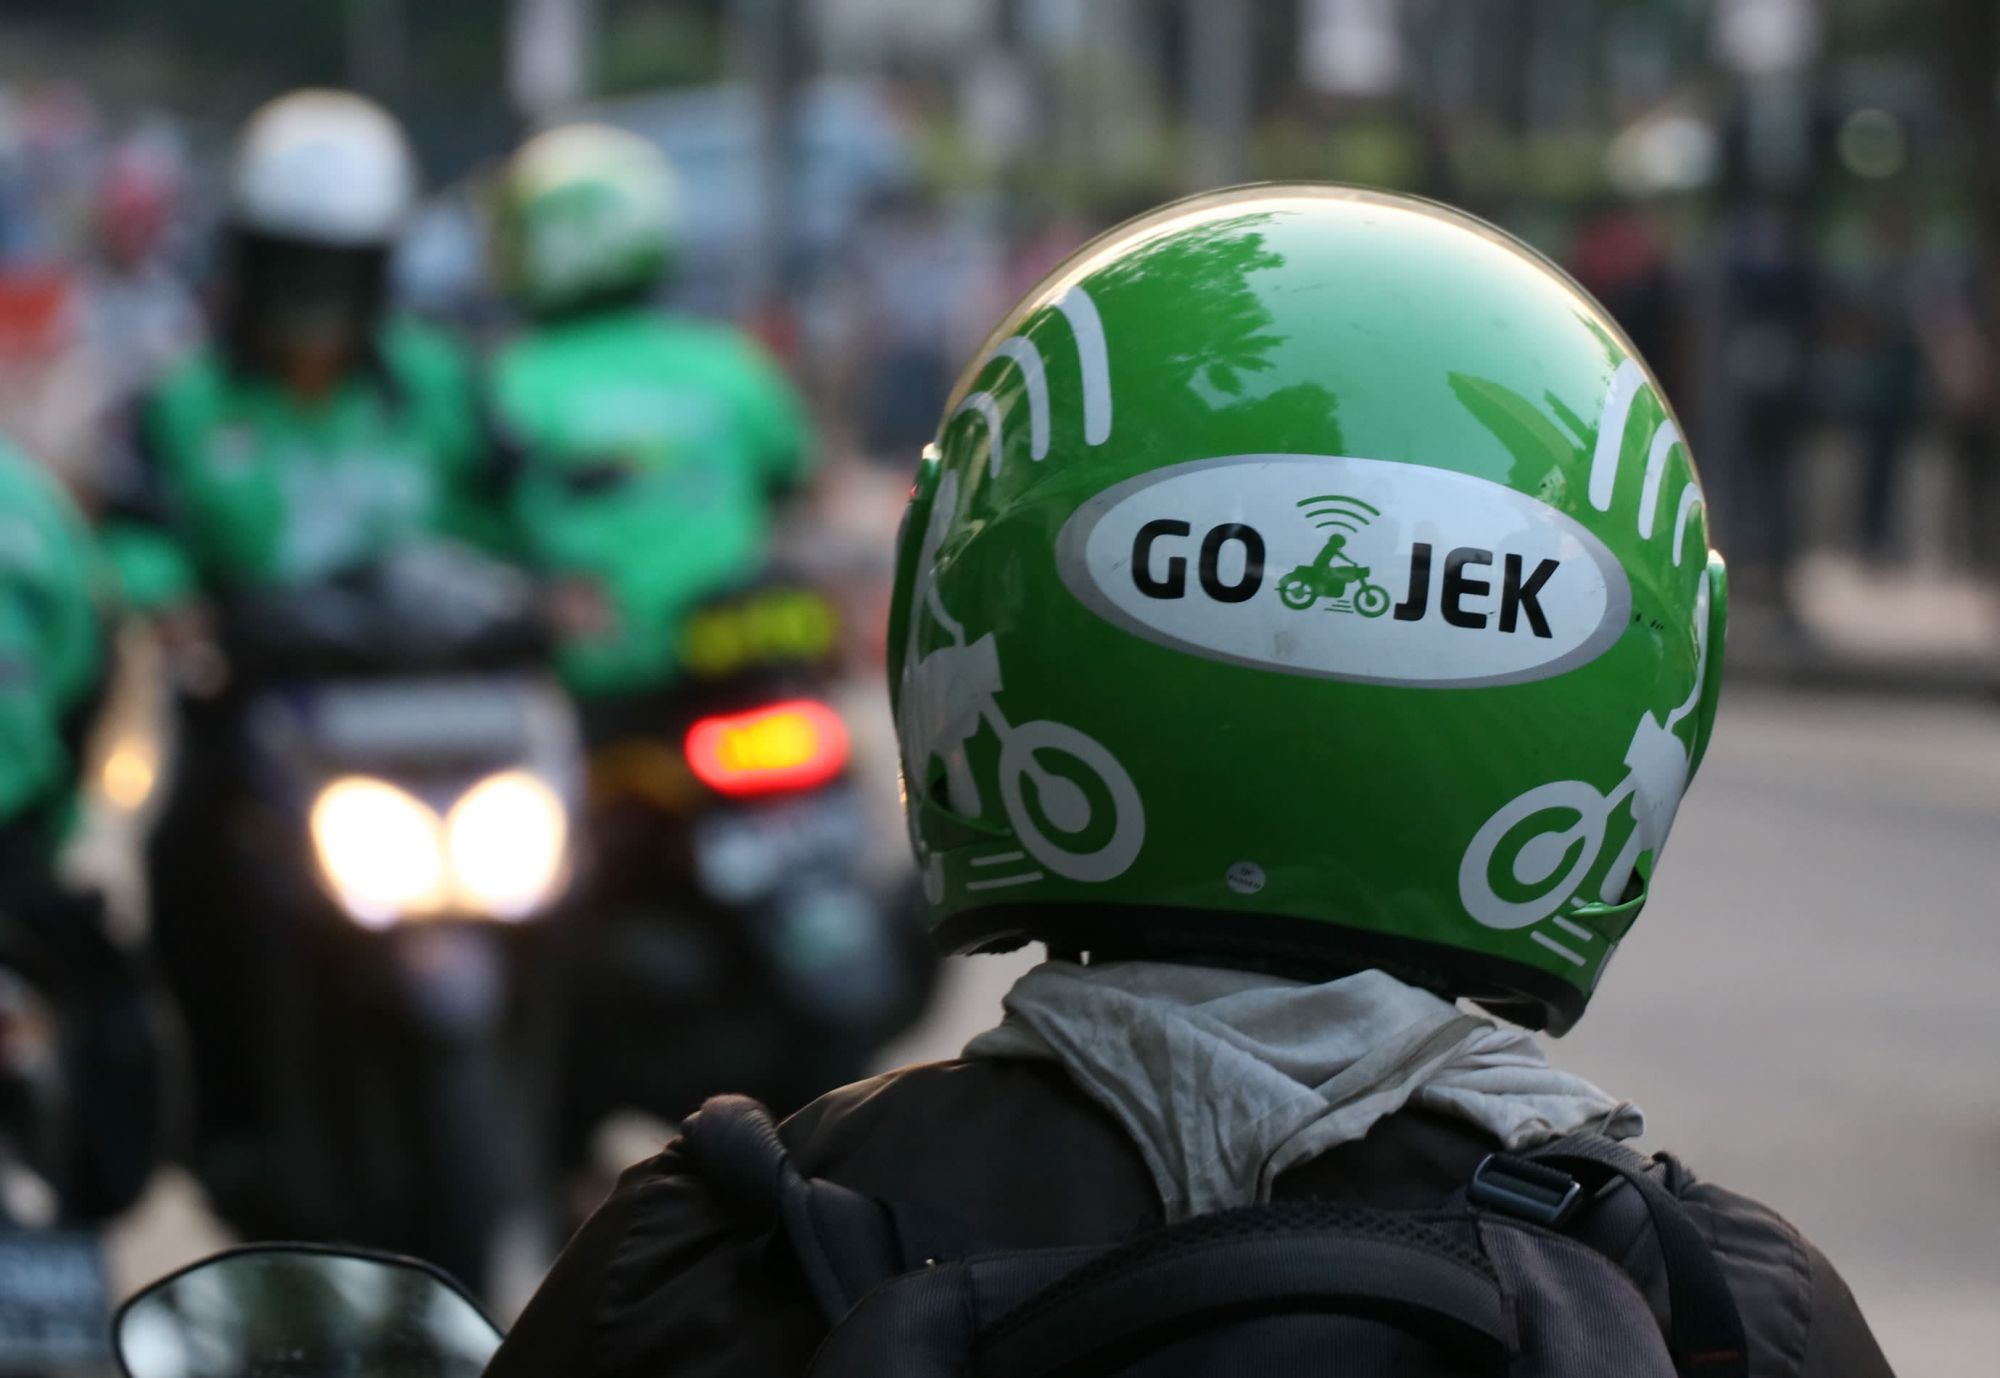 Indonesia's first unicorn startup, Go-Jek